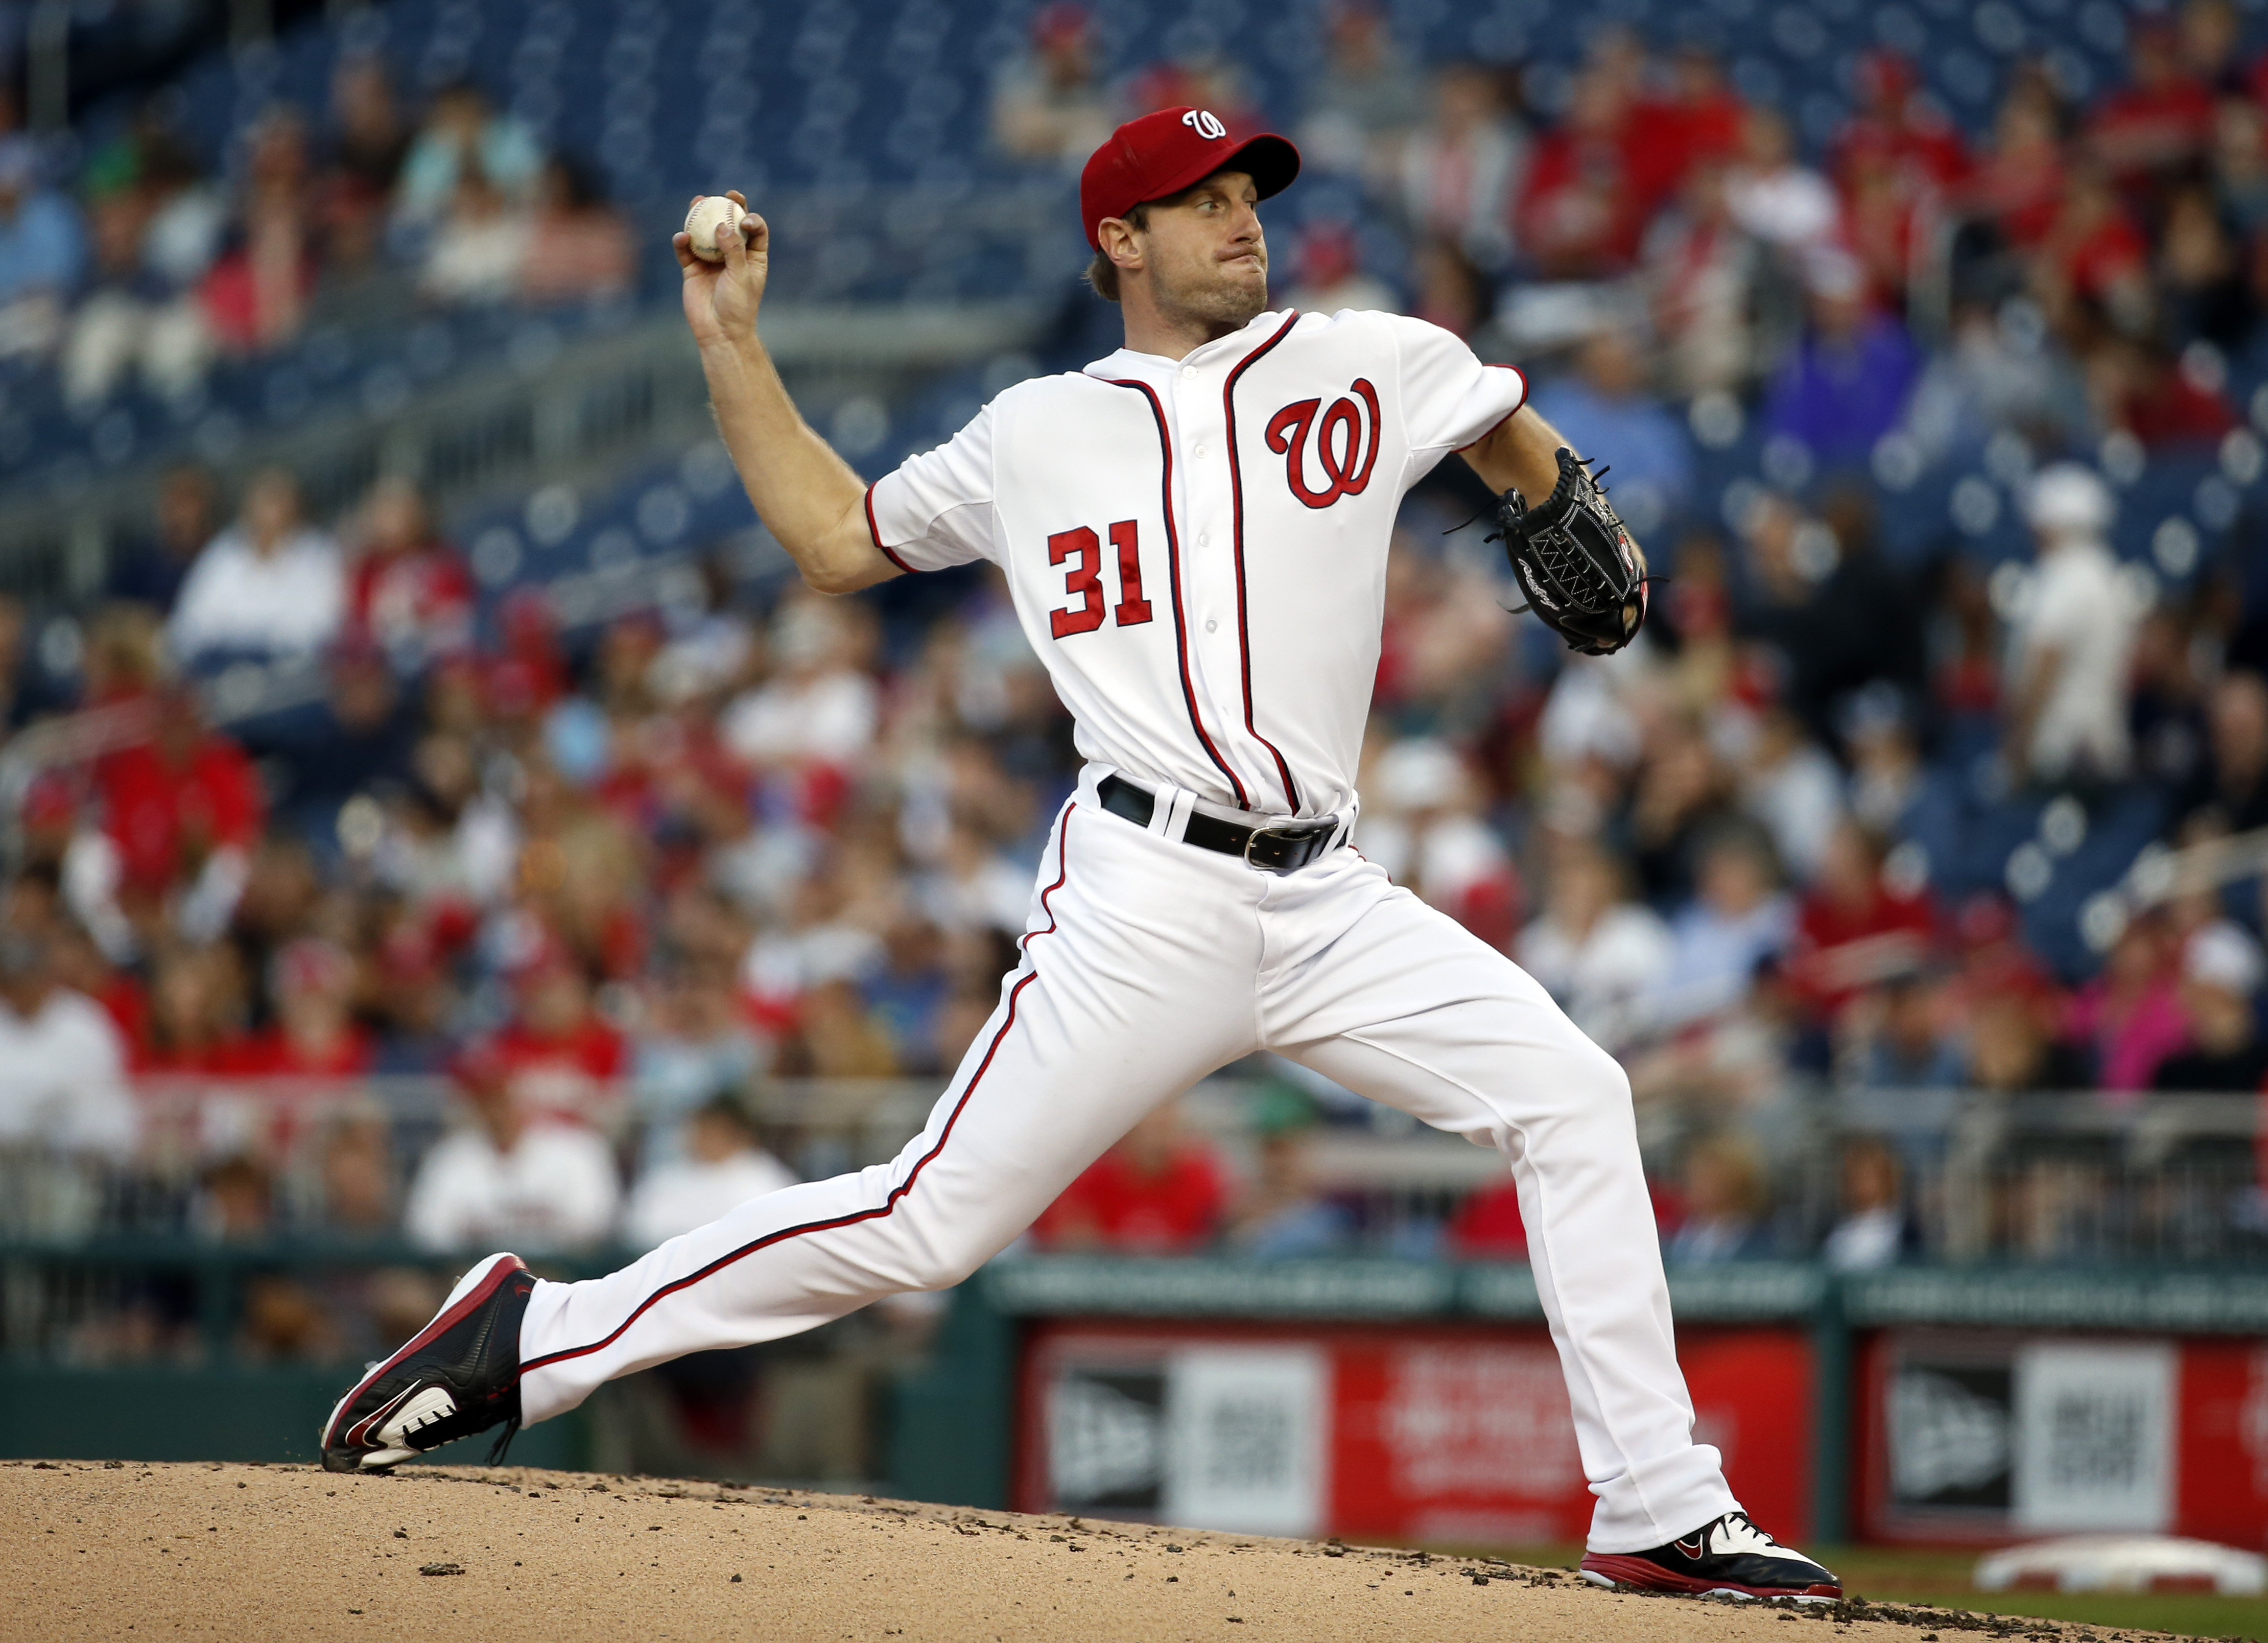 Washington Nationals starting pitcher Max Scherzer (31) throws during the third inning of a baseball game against the Philadelphia Phillies at Nationals Park, Friday, May 22, 2015, in Washington. (AP Photo/Alex Brandon)